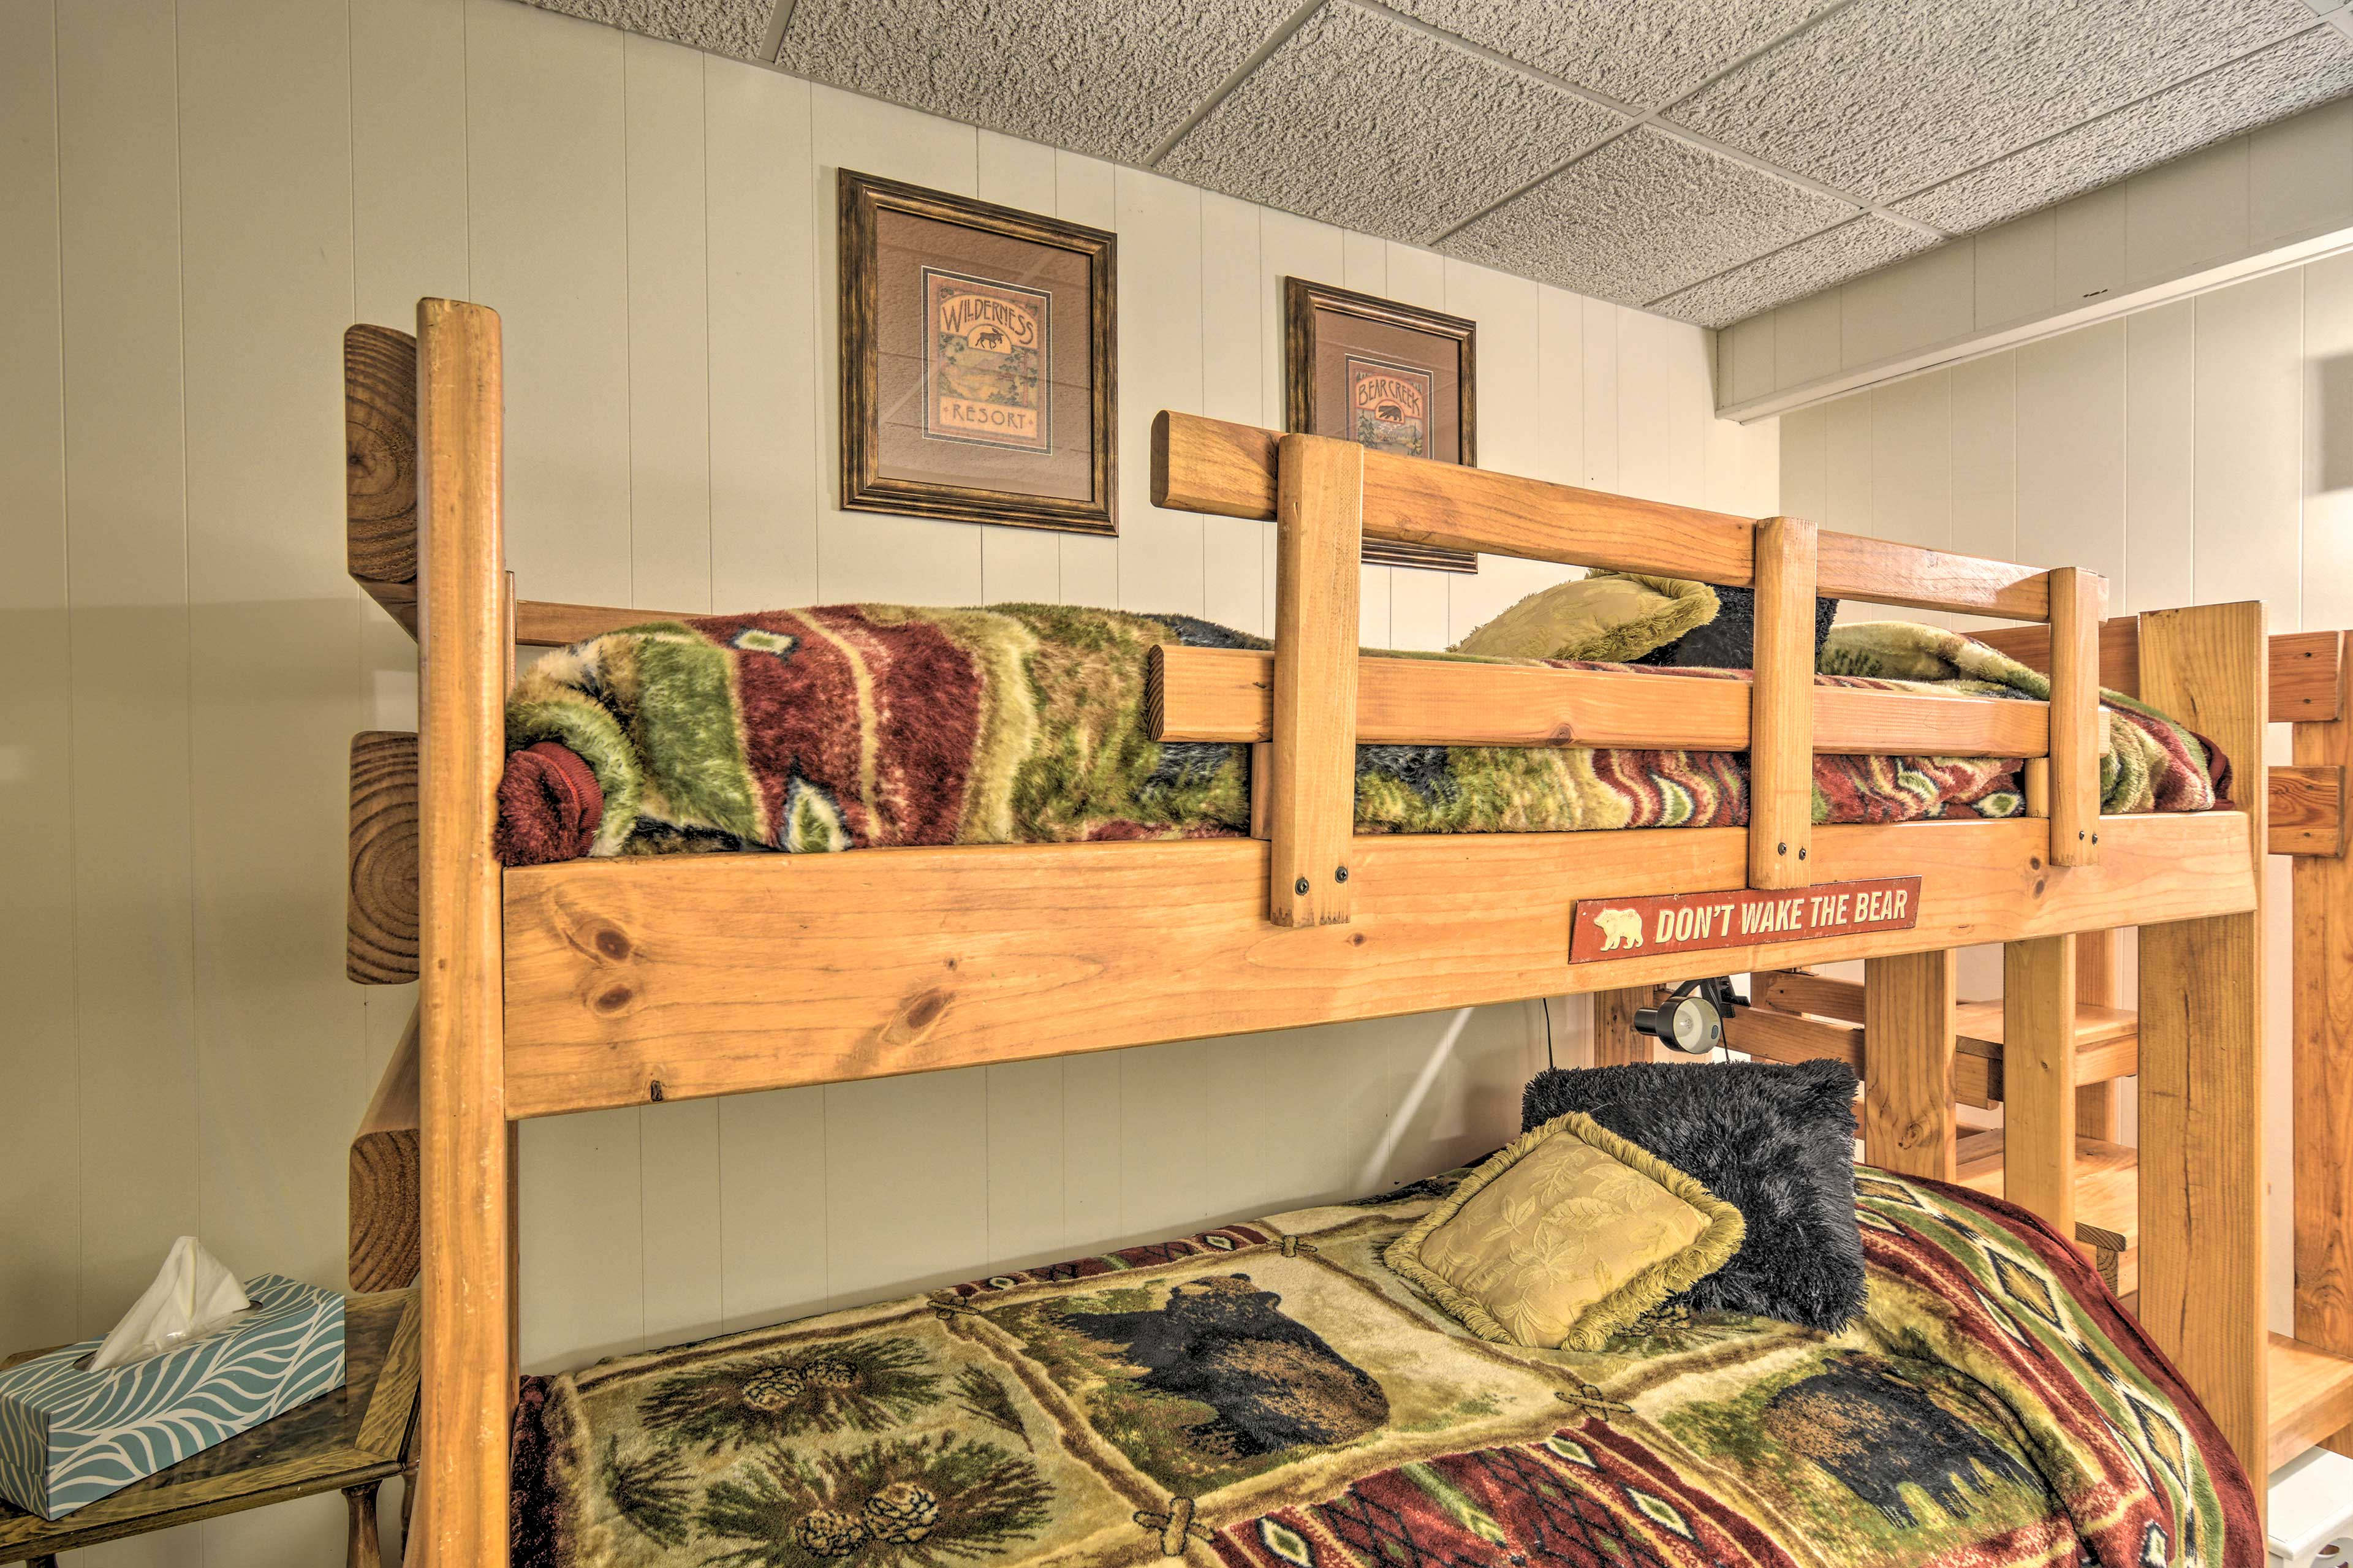 Kids can claim the twin bunk bed.